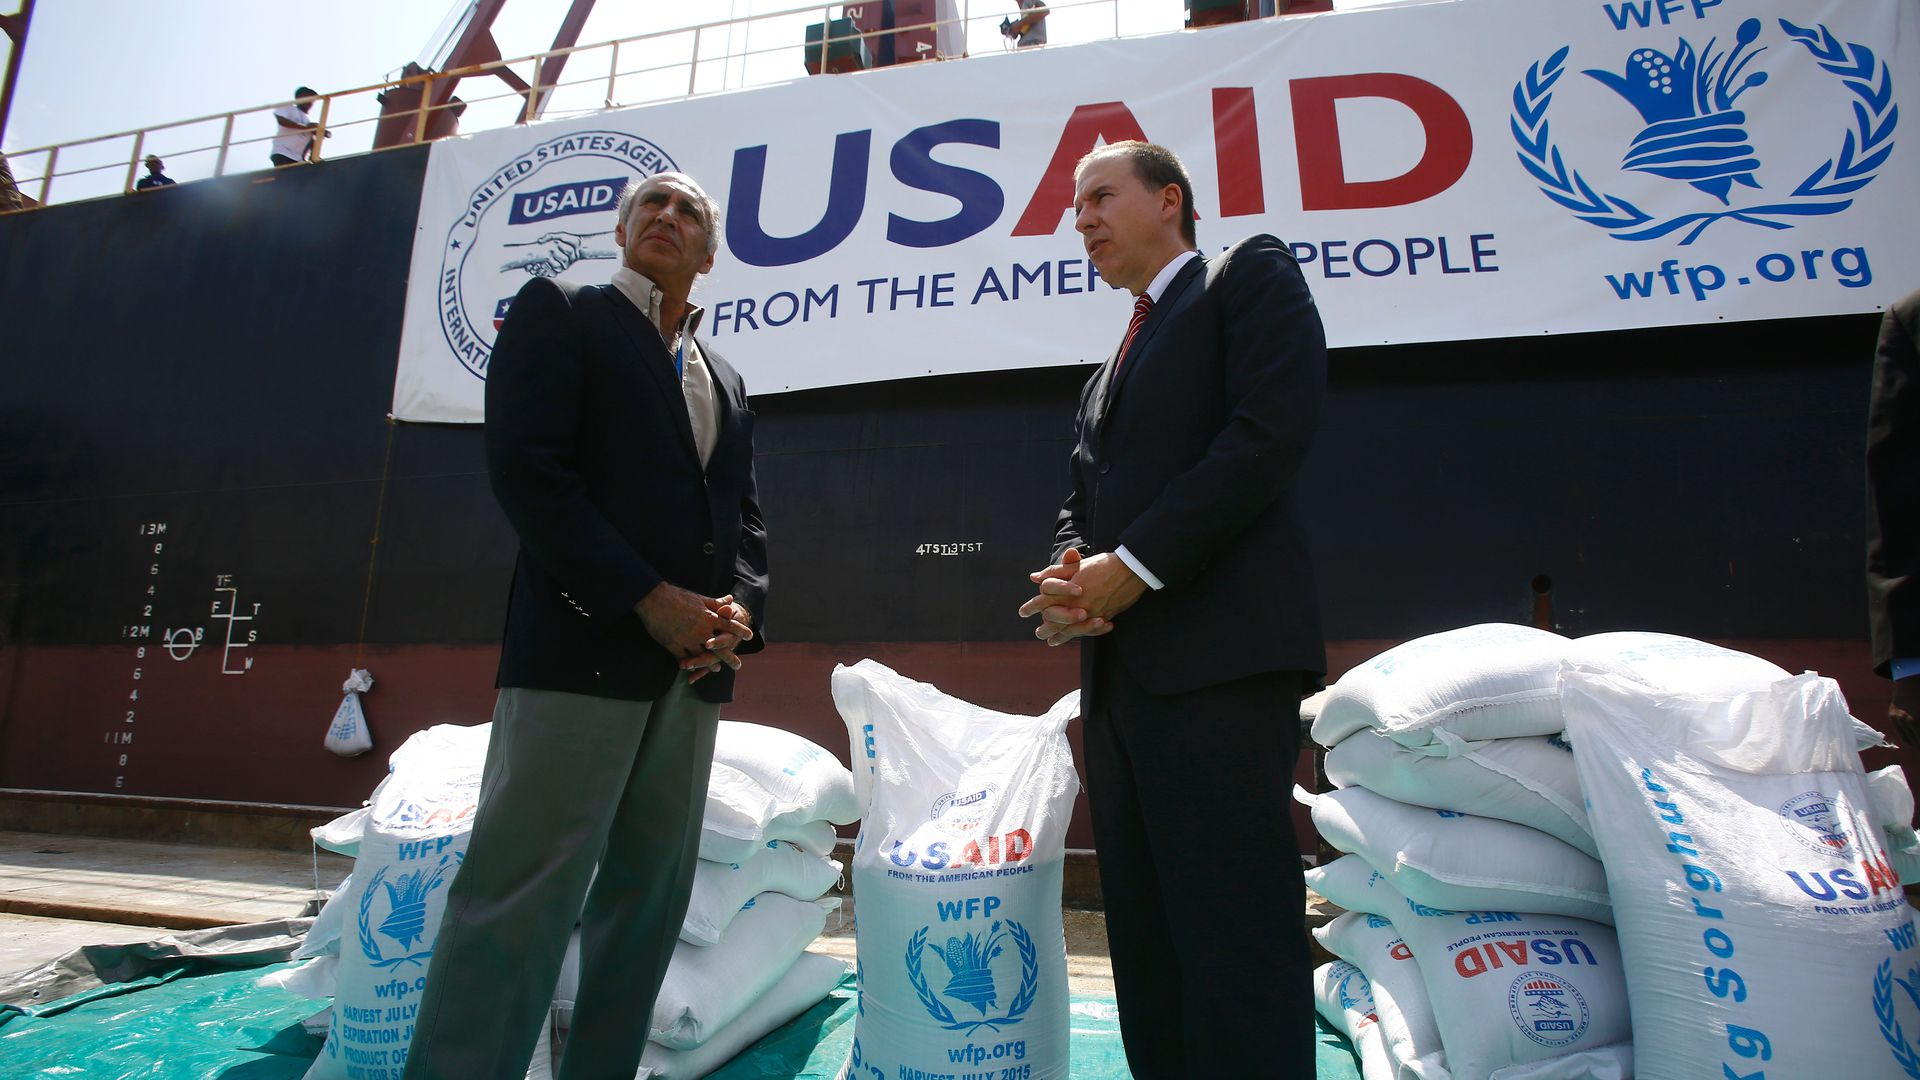 U.S. officials preside over delivery of food aid in Sudan